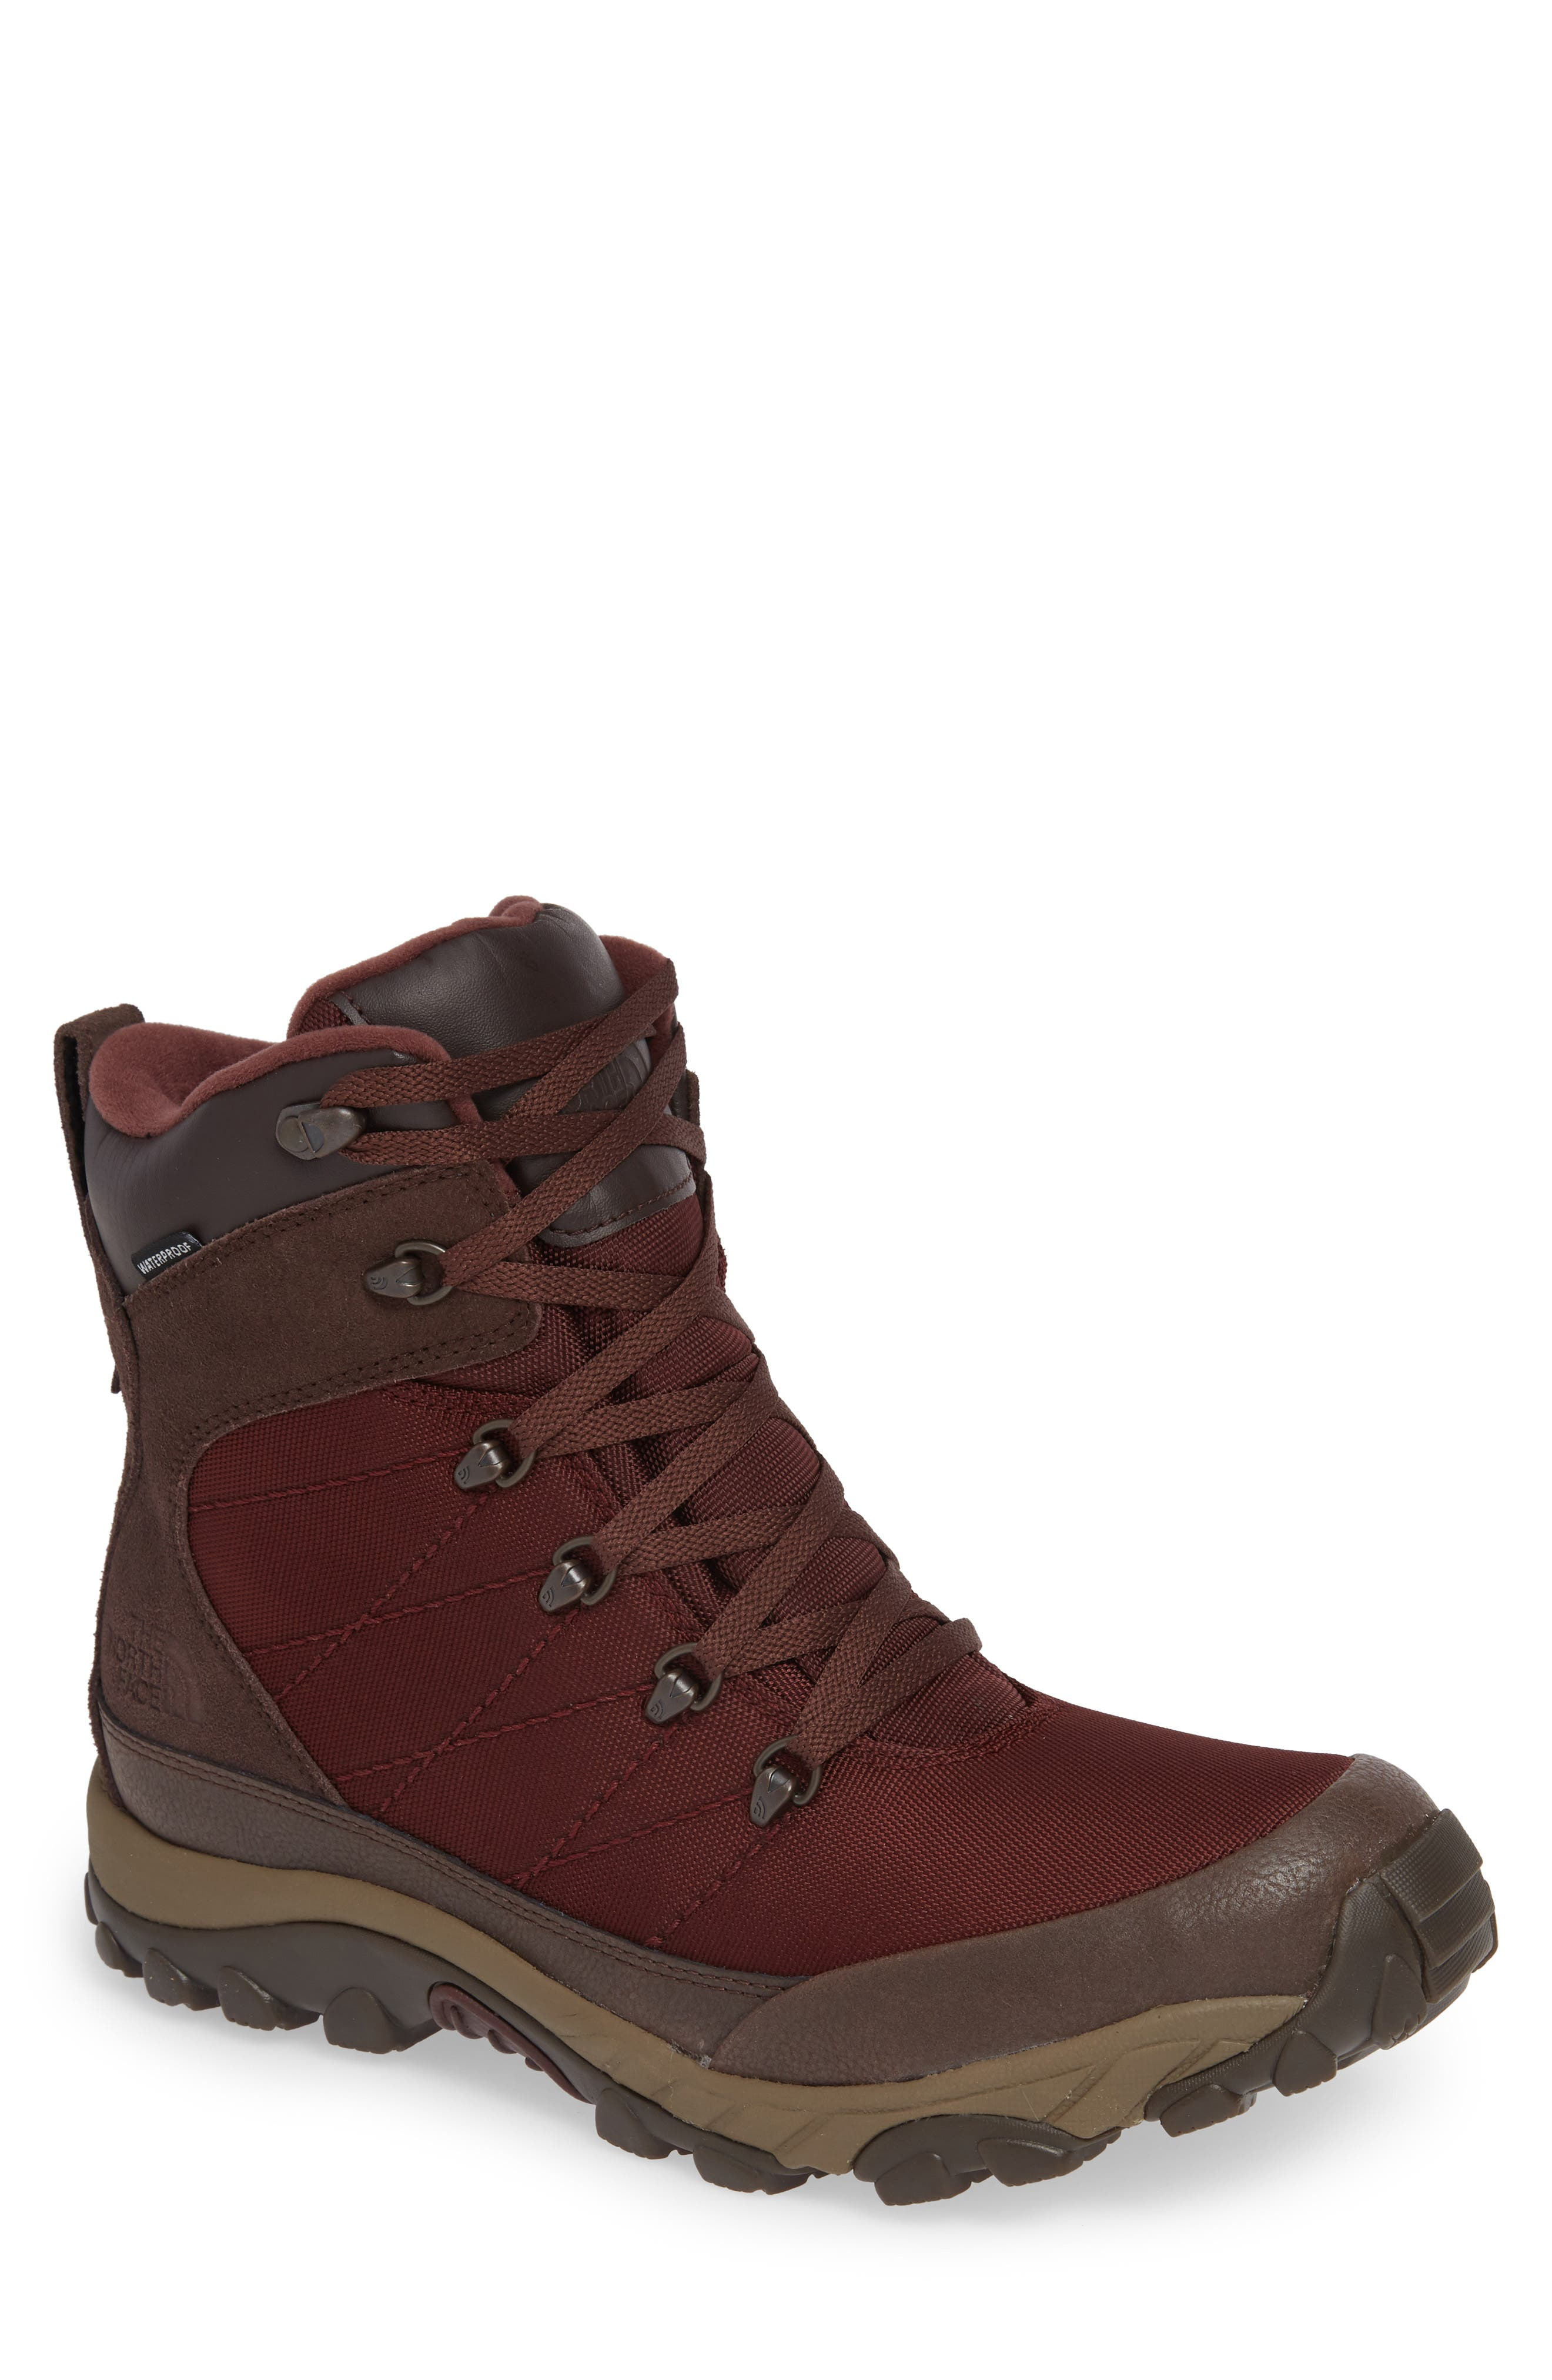 Chilkat Snow Waterproof Boot,                         Main,                         color, BITTER CHOCOLATE BROWN